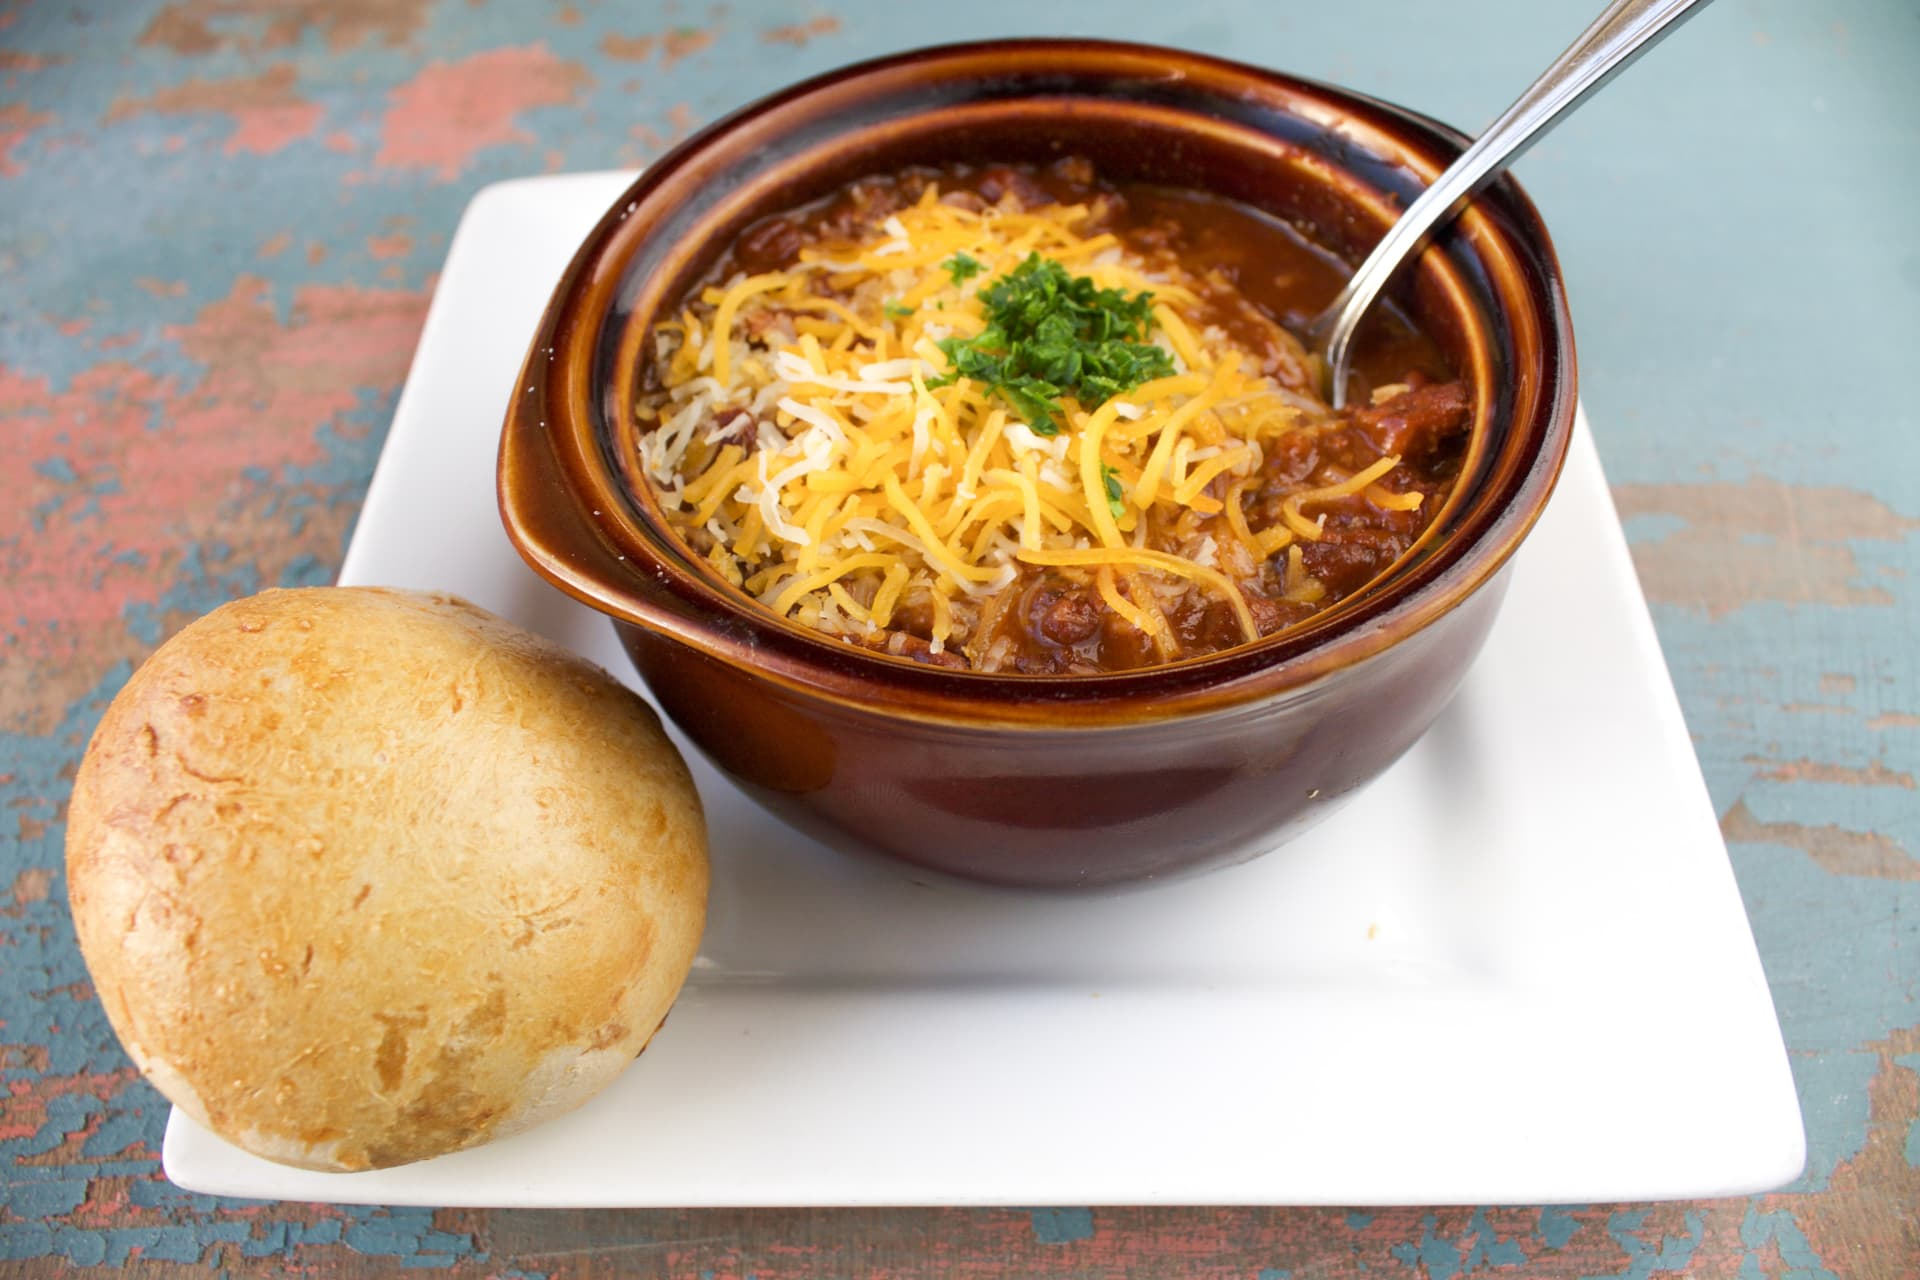 House Chili and Cheese